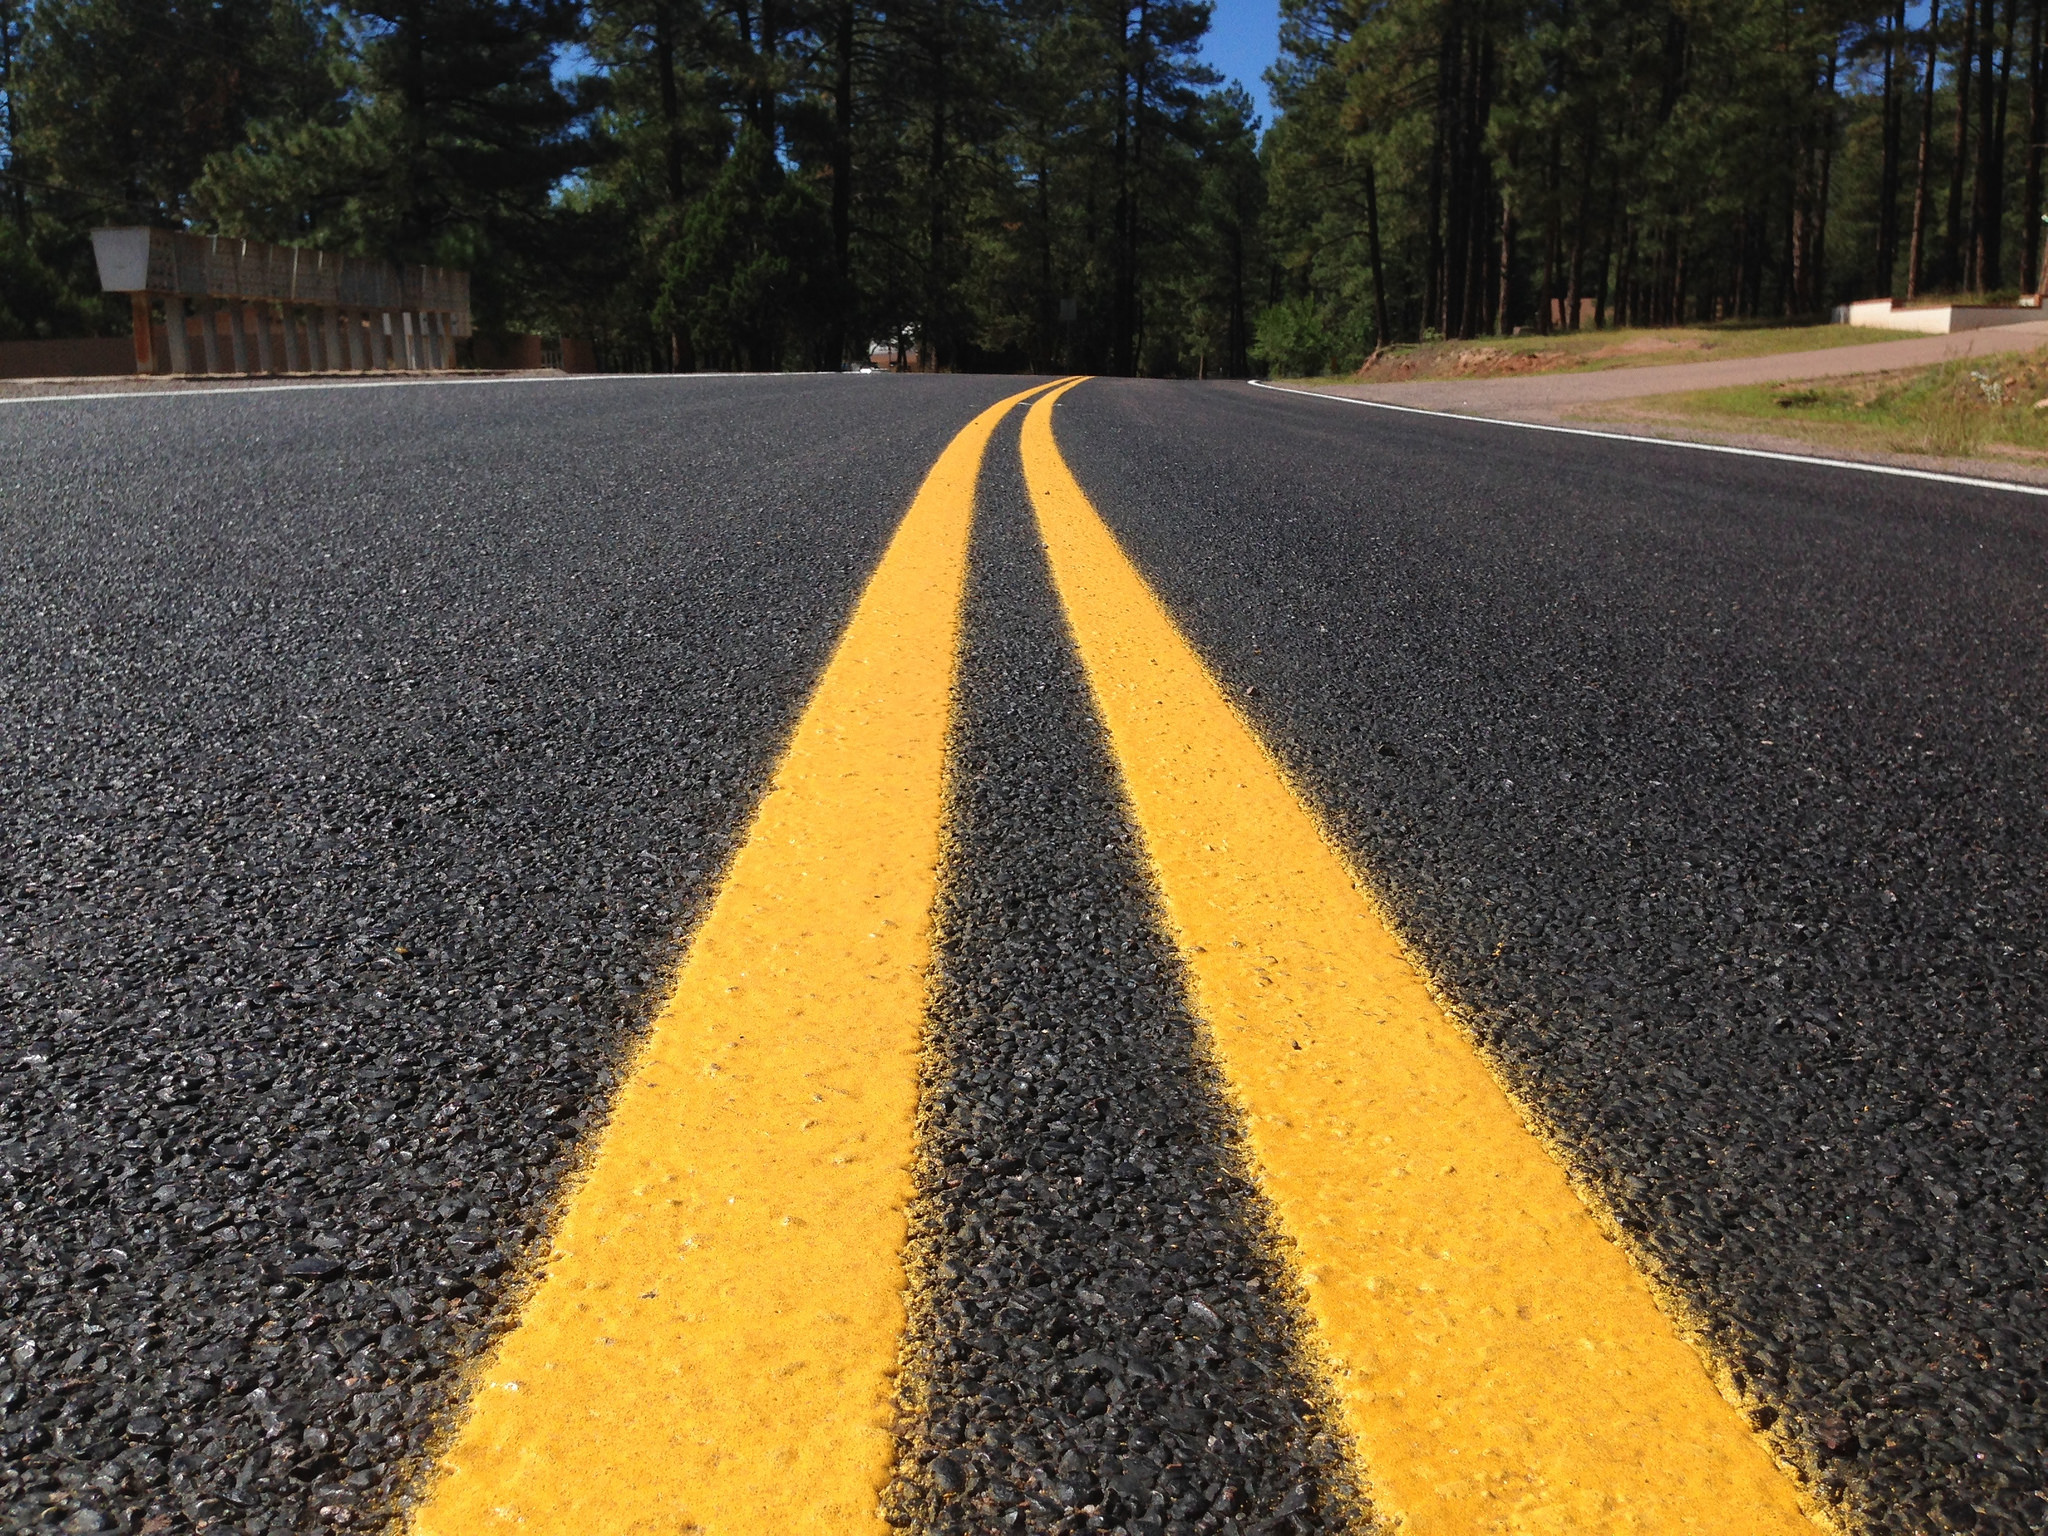 A newly-paved road. (Credit: Alan Levine/Flickr/File Photo)